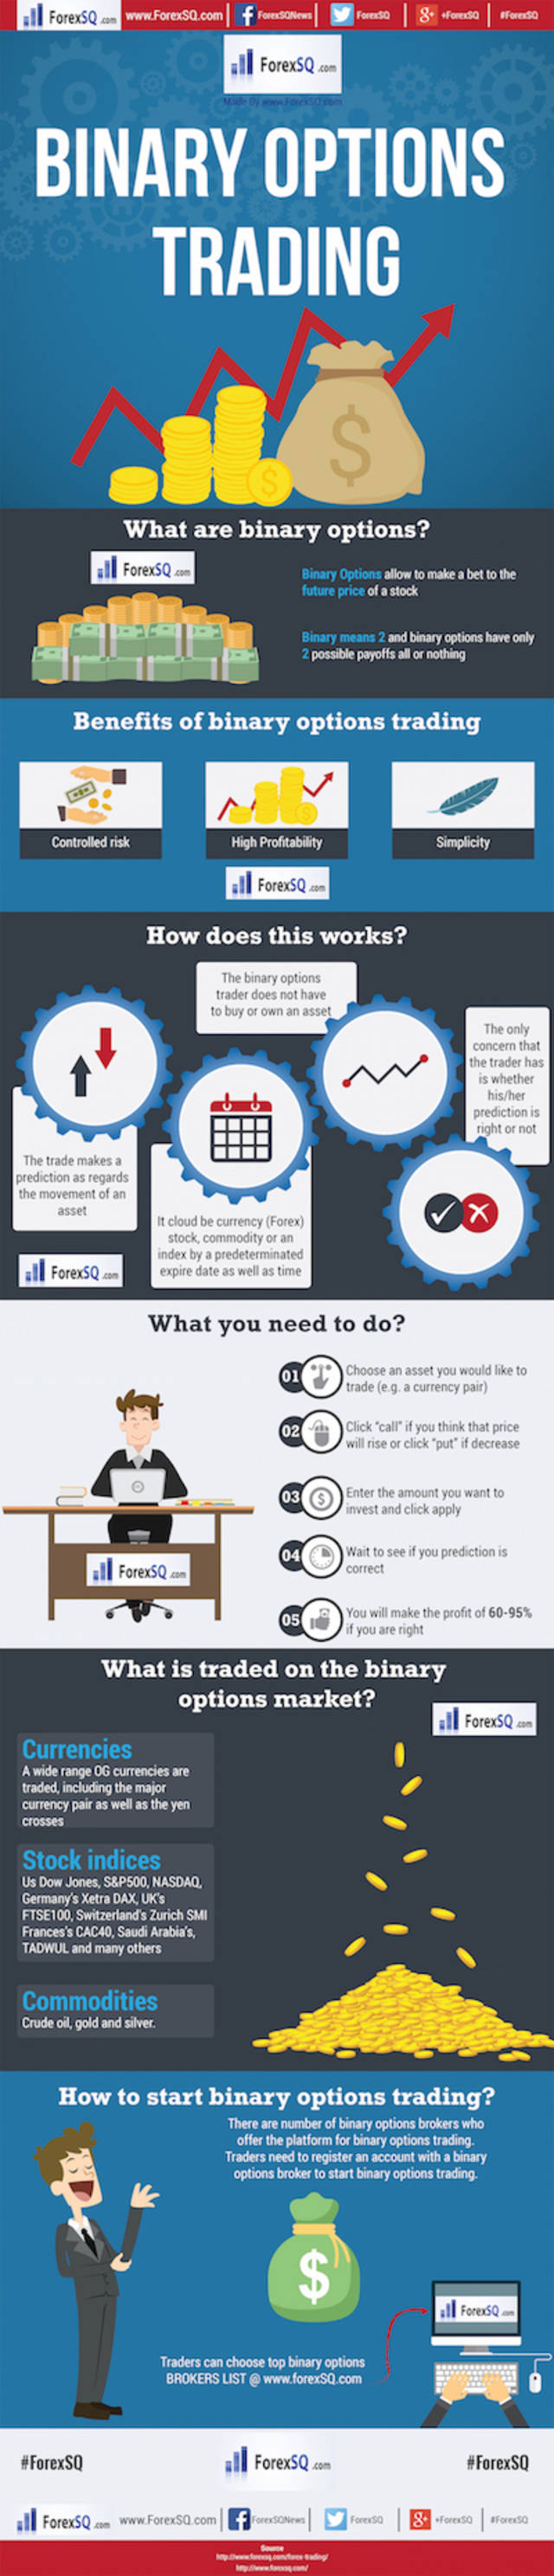 Binary options trading infographic 1600